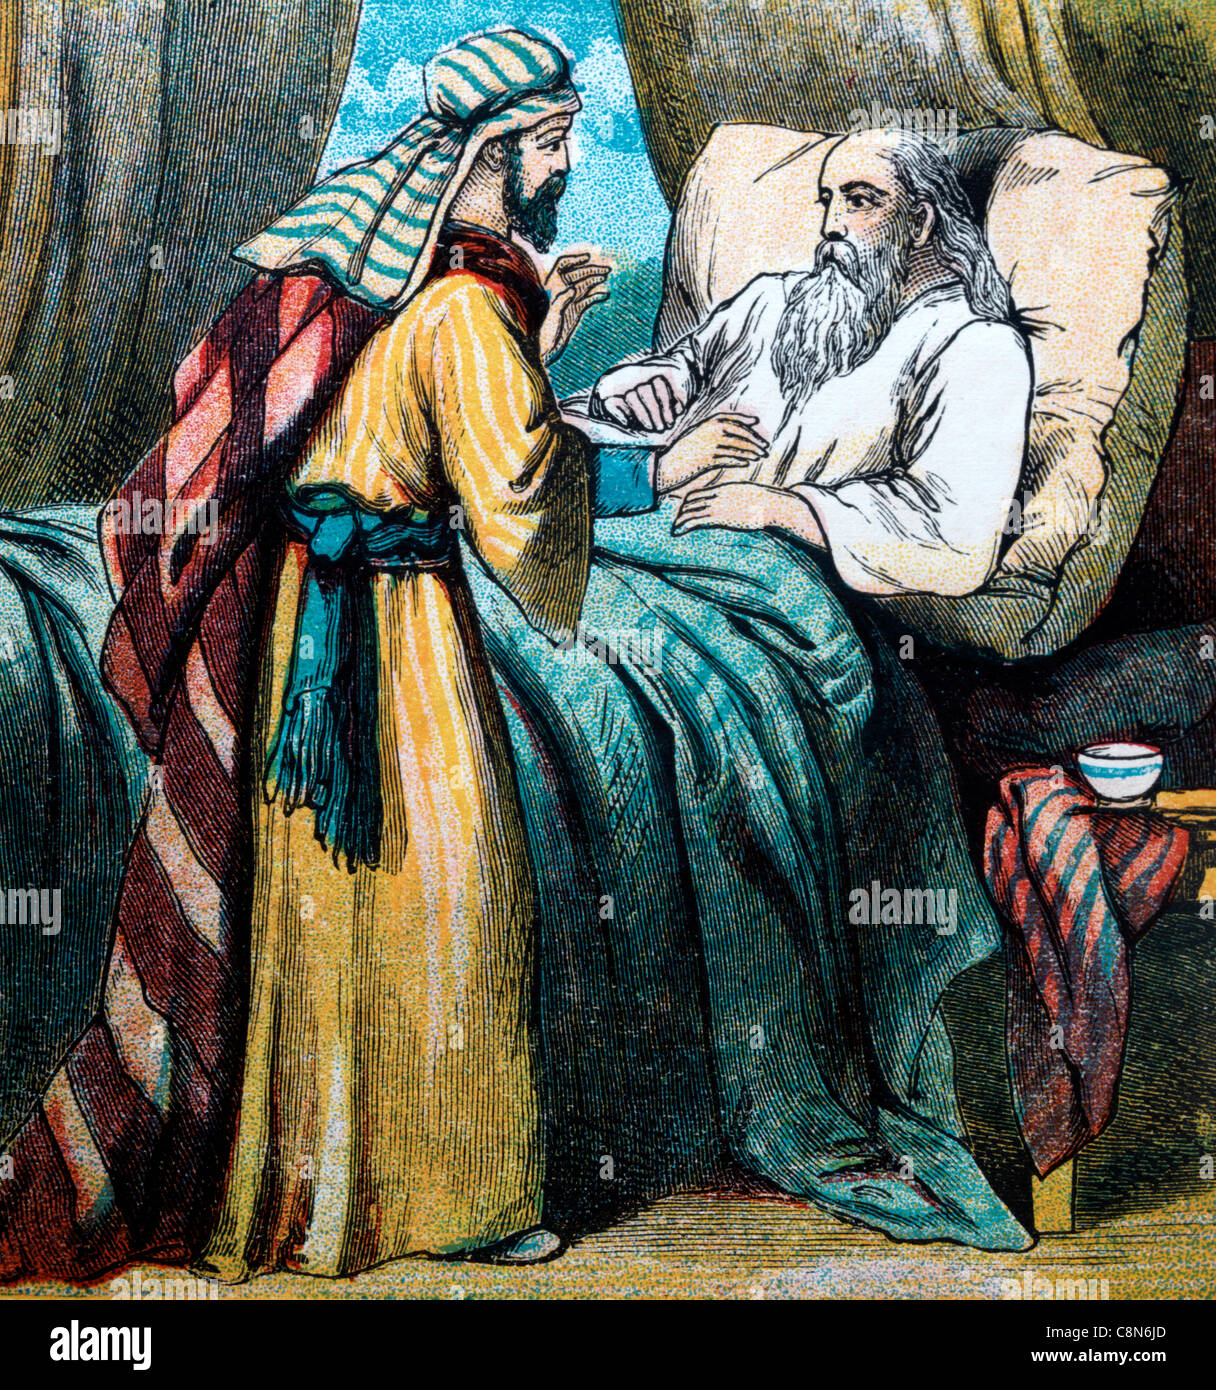 bible stories illustration of esau coming back to isaac after the